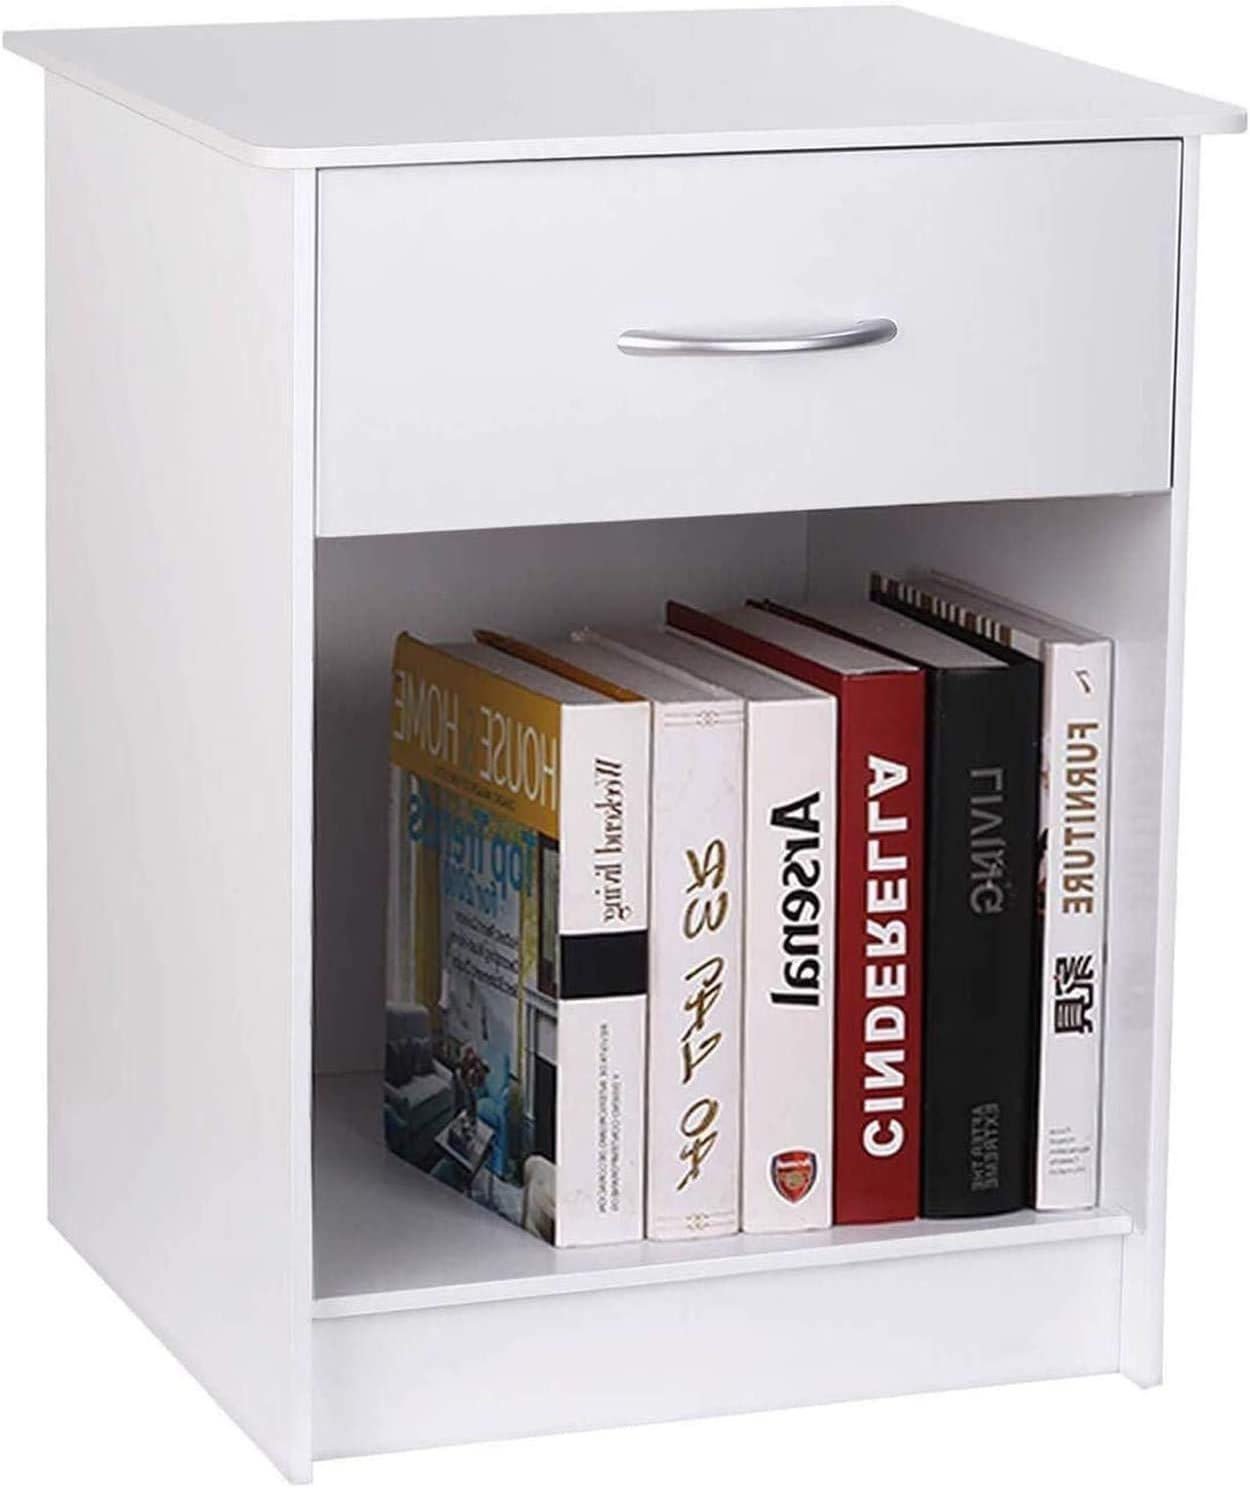 TUSY White Nightstand with Drawer, Bedside Table End Tables Living Room, File Cabinet Storage with Sliding Drawers and Shelf for Home Office